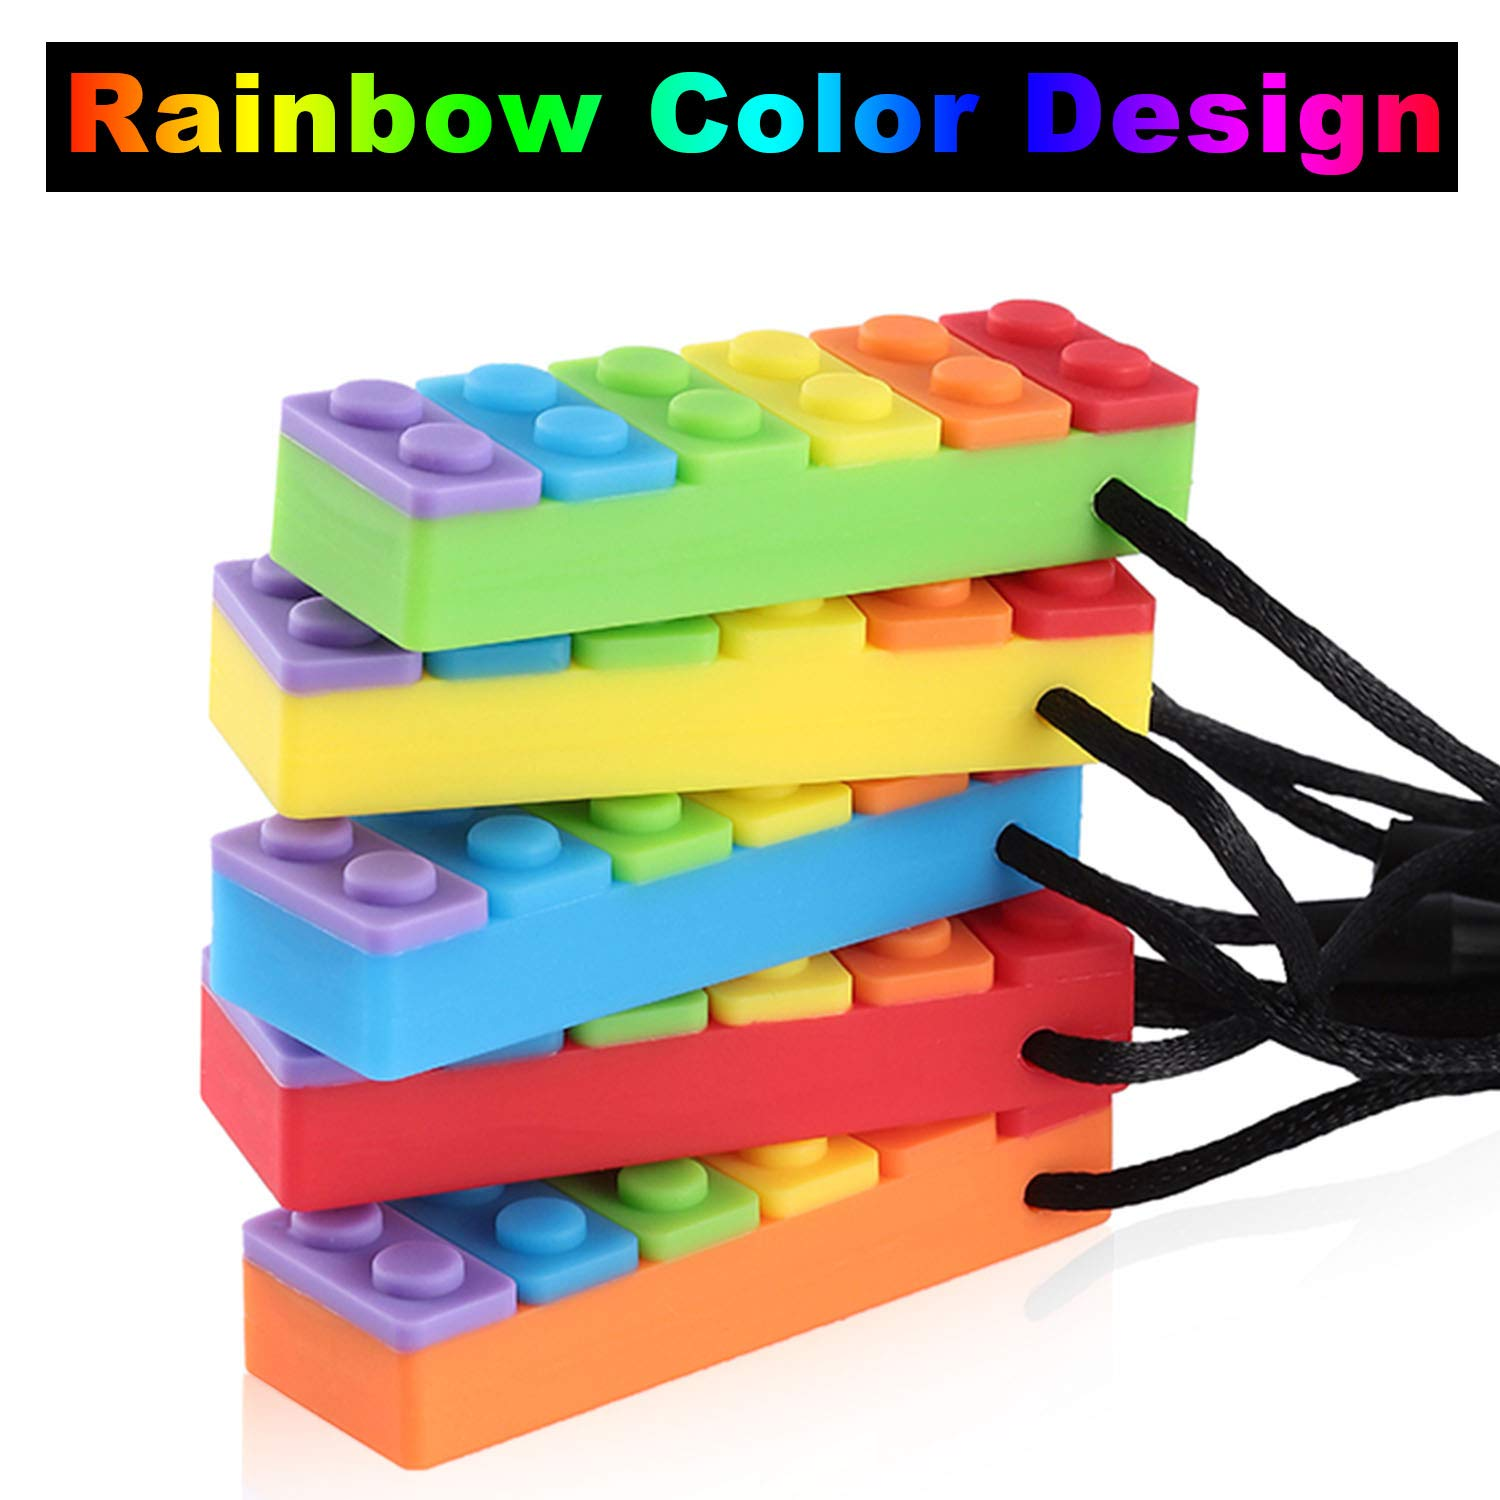 Autistic Children,5 Pack Anxiety SLGOL Rinbow Color Silicone Chew Pendant Training and Development Fidget Toy Chewing Necklace for Teething Babies Sensory Chew Necklace Oral Motor Autism ADHD SPD